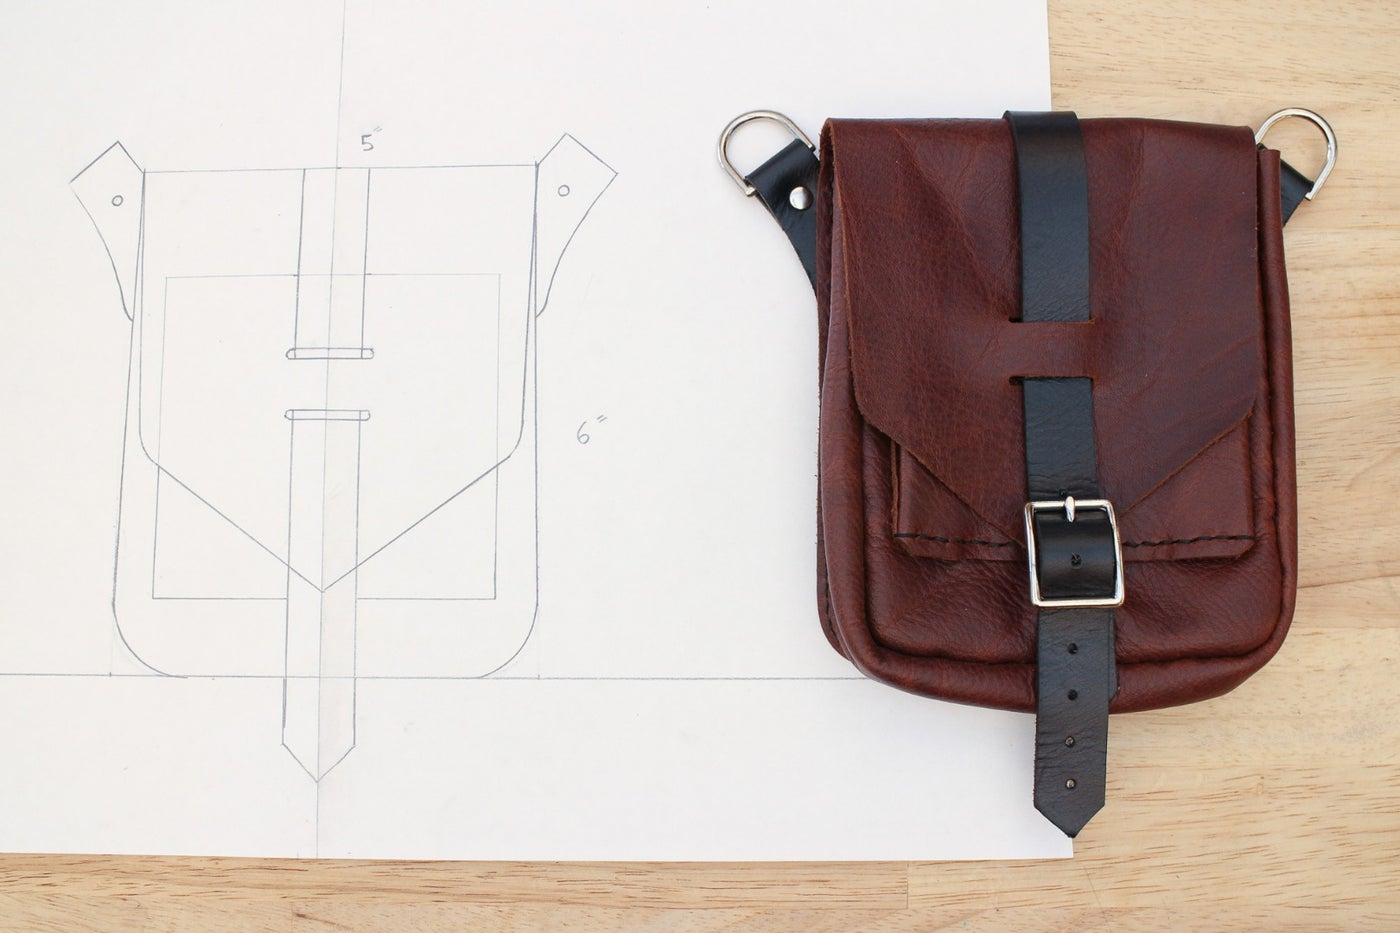 Designing a Simple Leather Bag